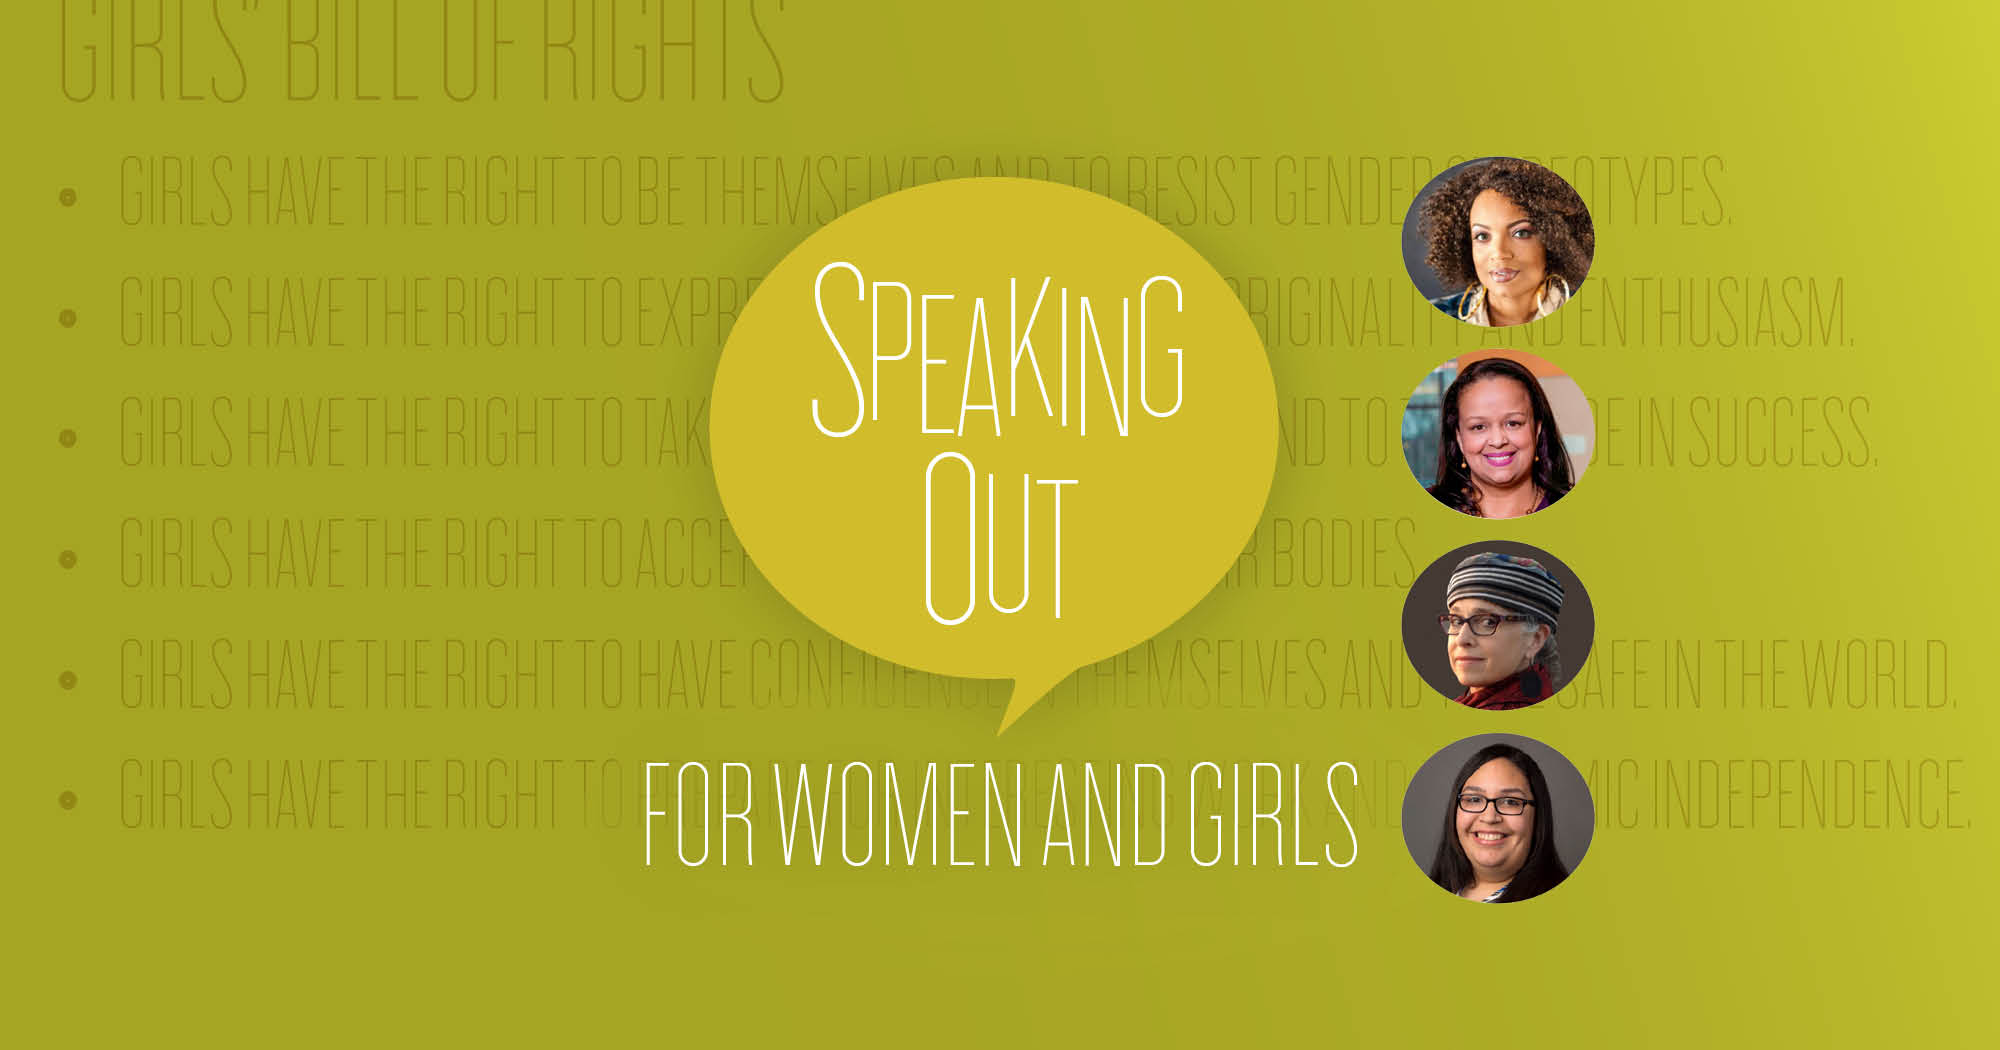 #GirlsToo inspires speaking out